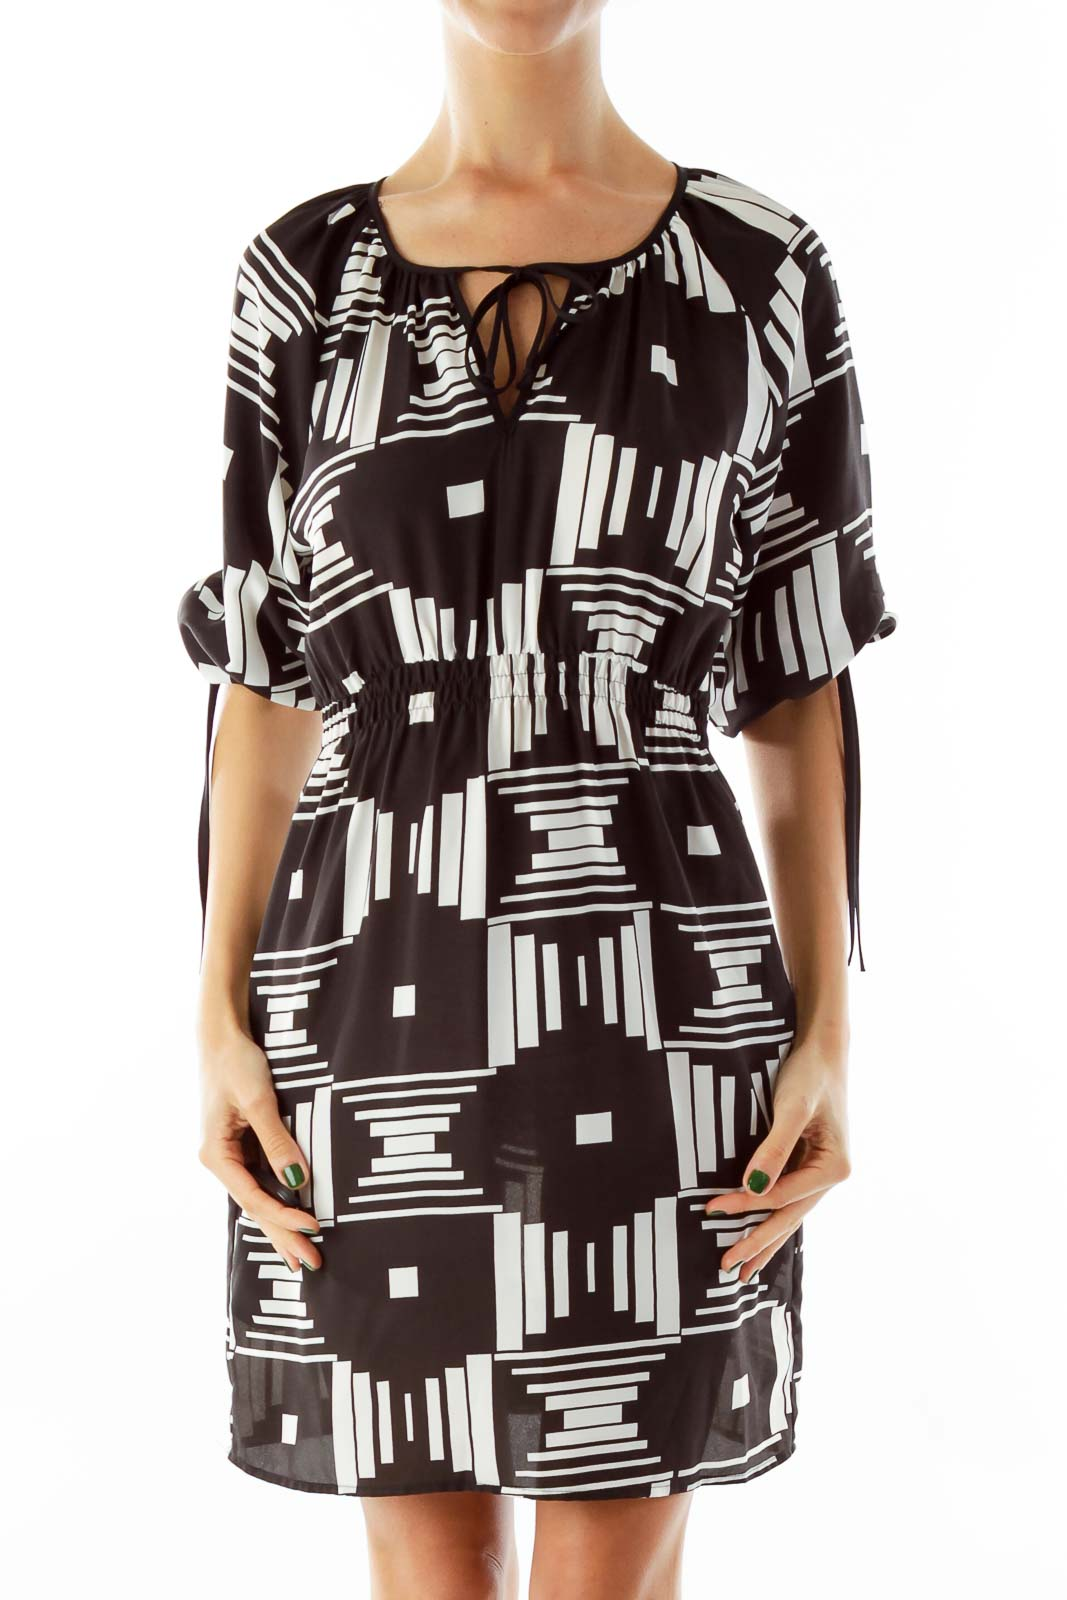 Black & White Aztec Print Dress